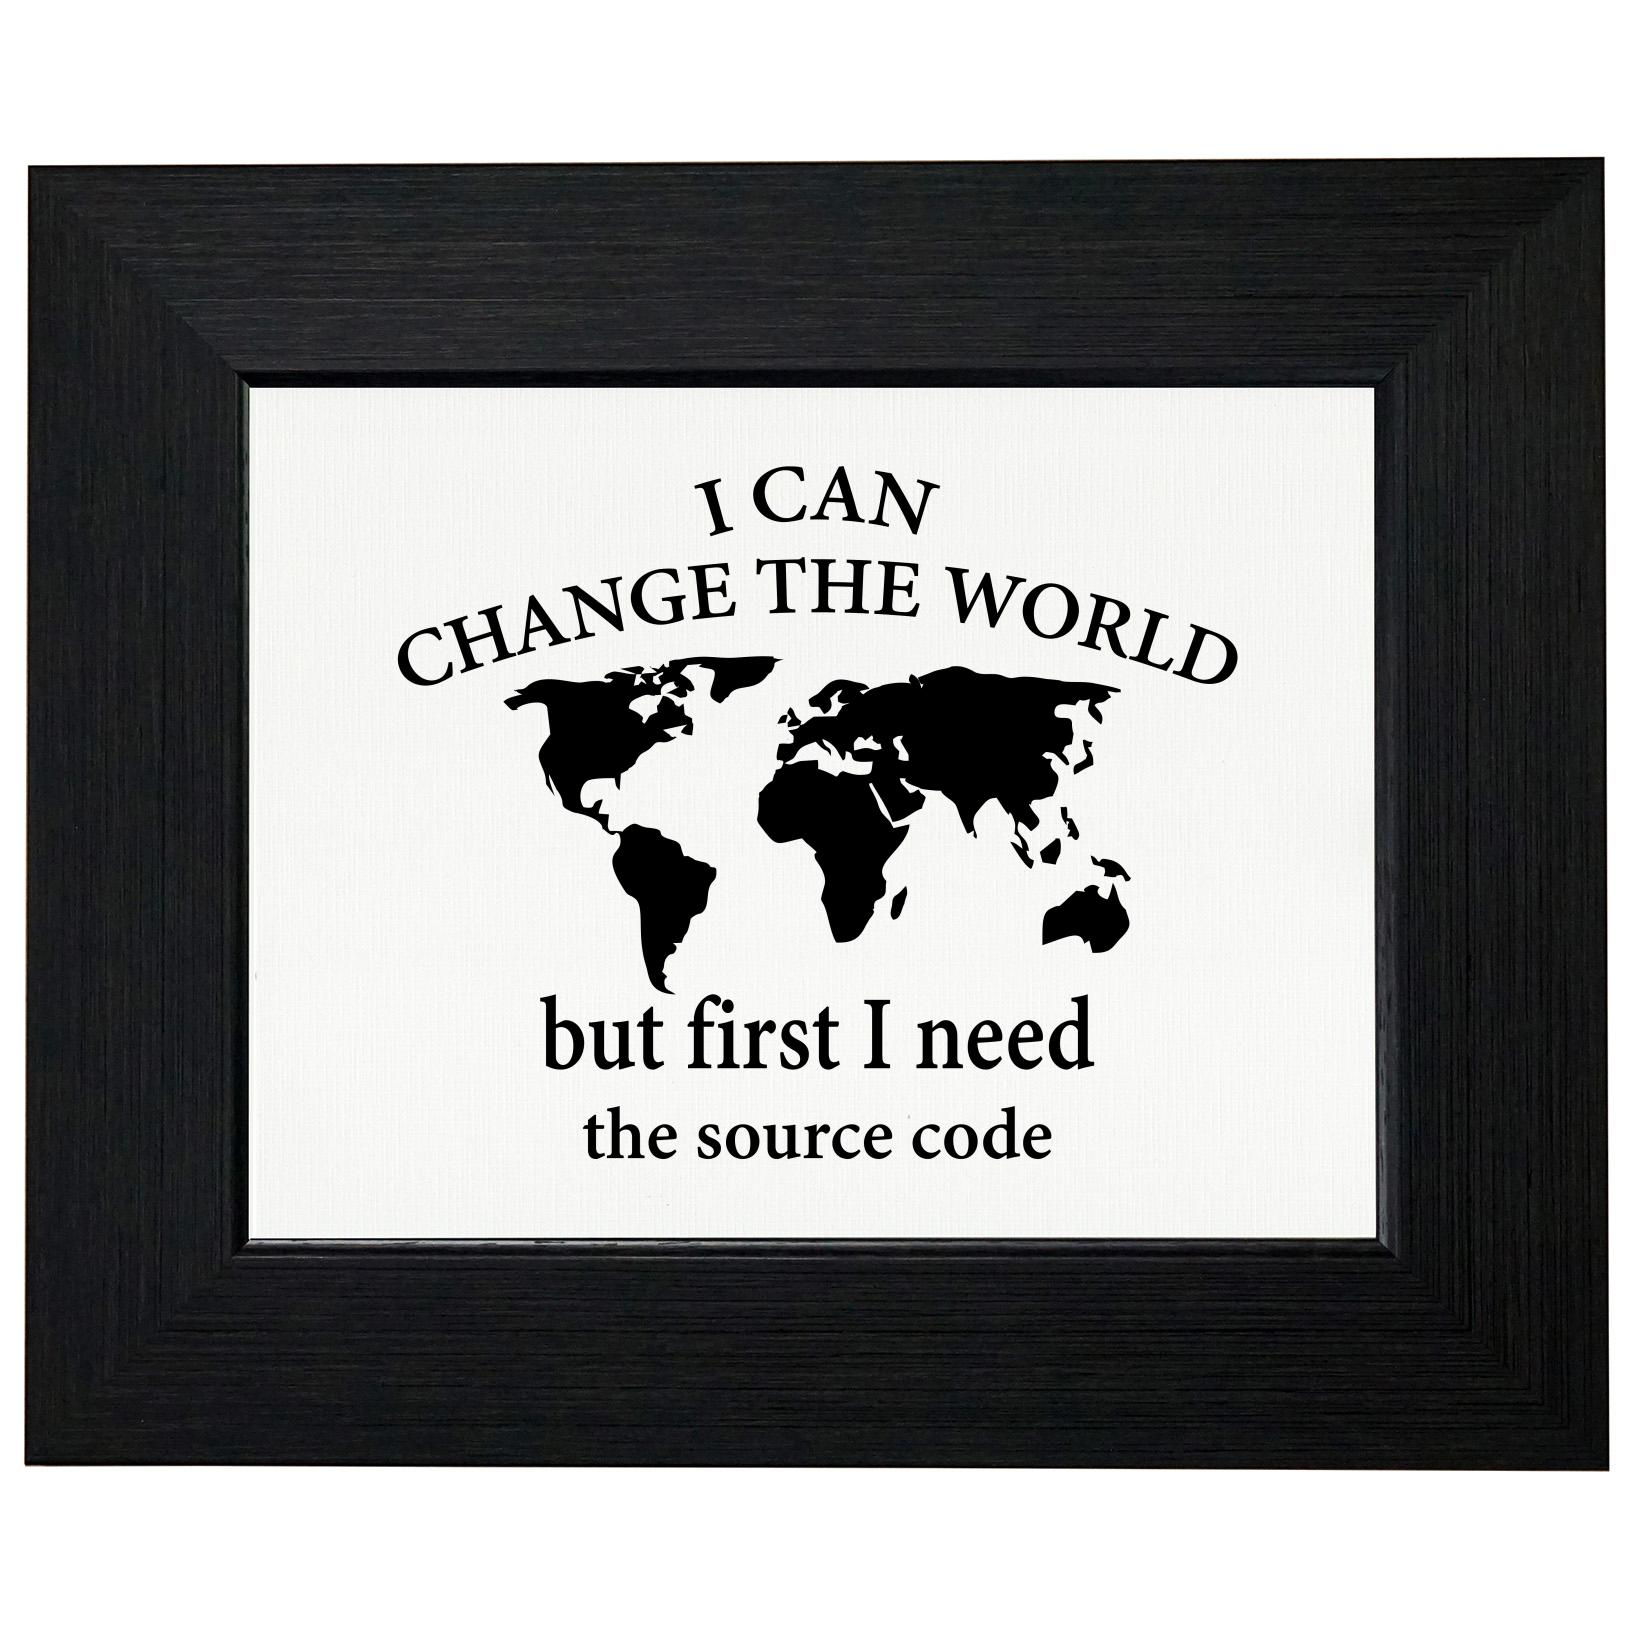 I Can Change The World First I Need To Source Code - Coder Framed Print Poster Wall or Desk Mount Options